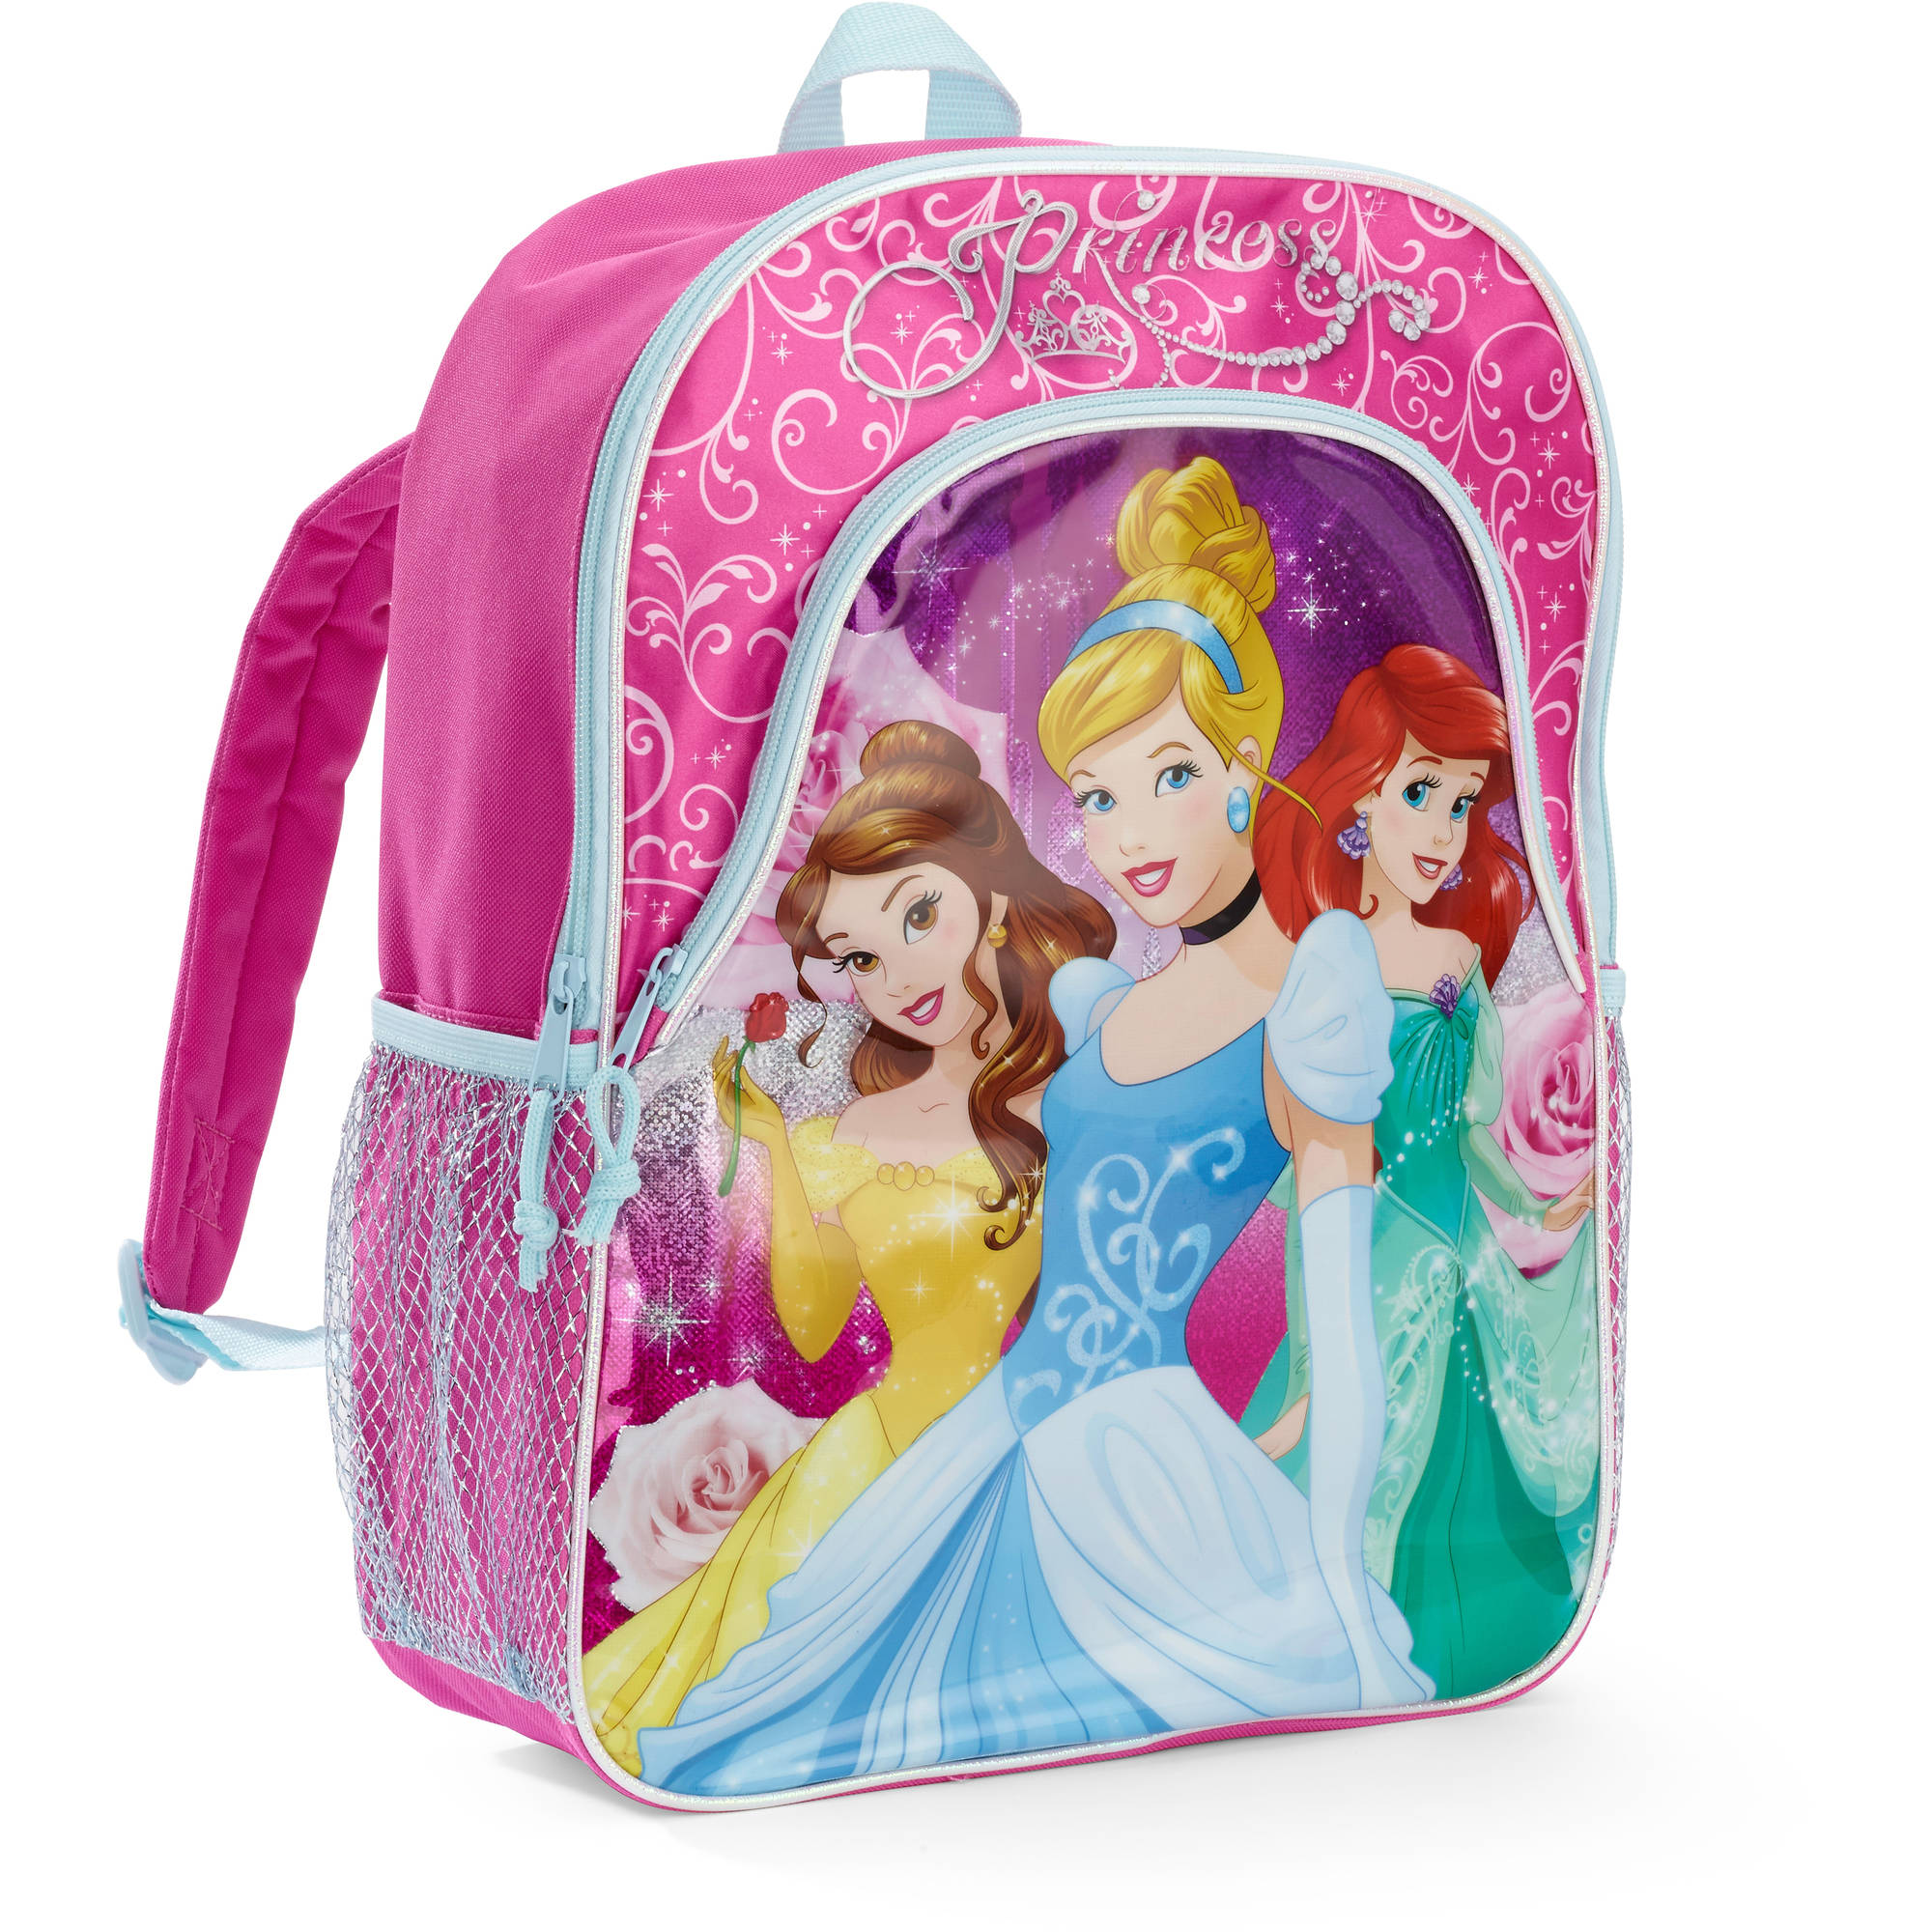 Disney Princess 16'' Deluxe Front Pocket Kids Backpack